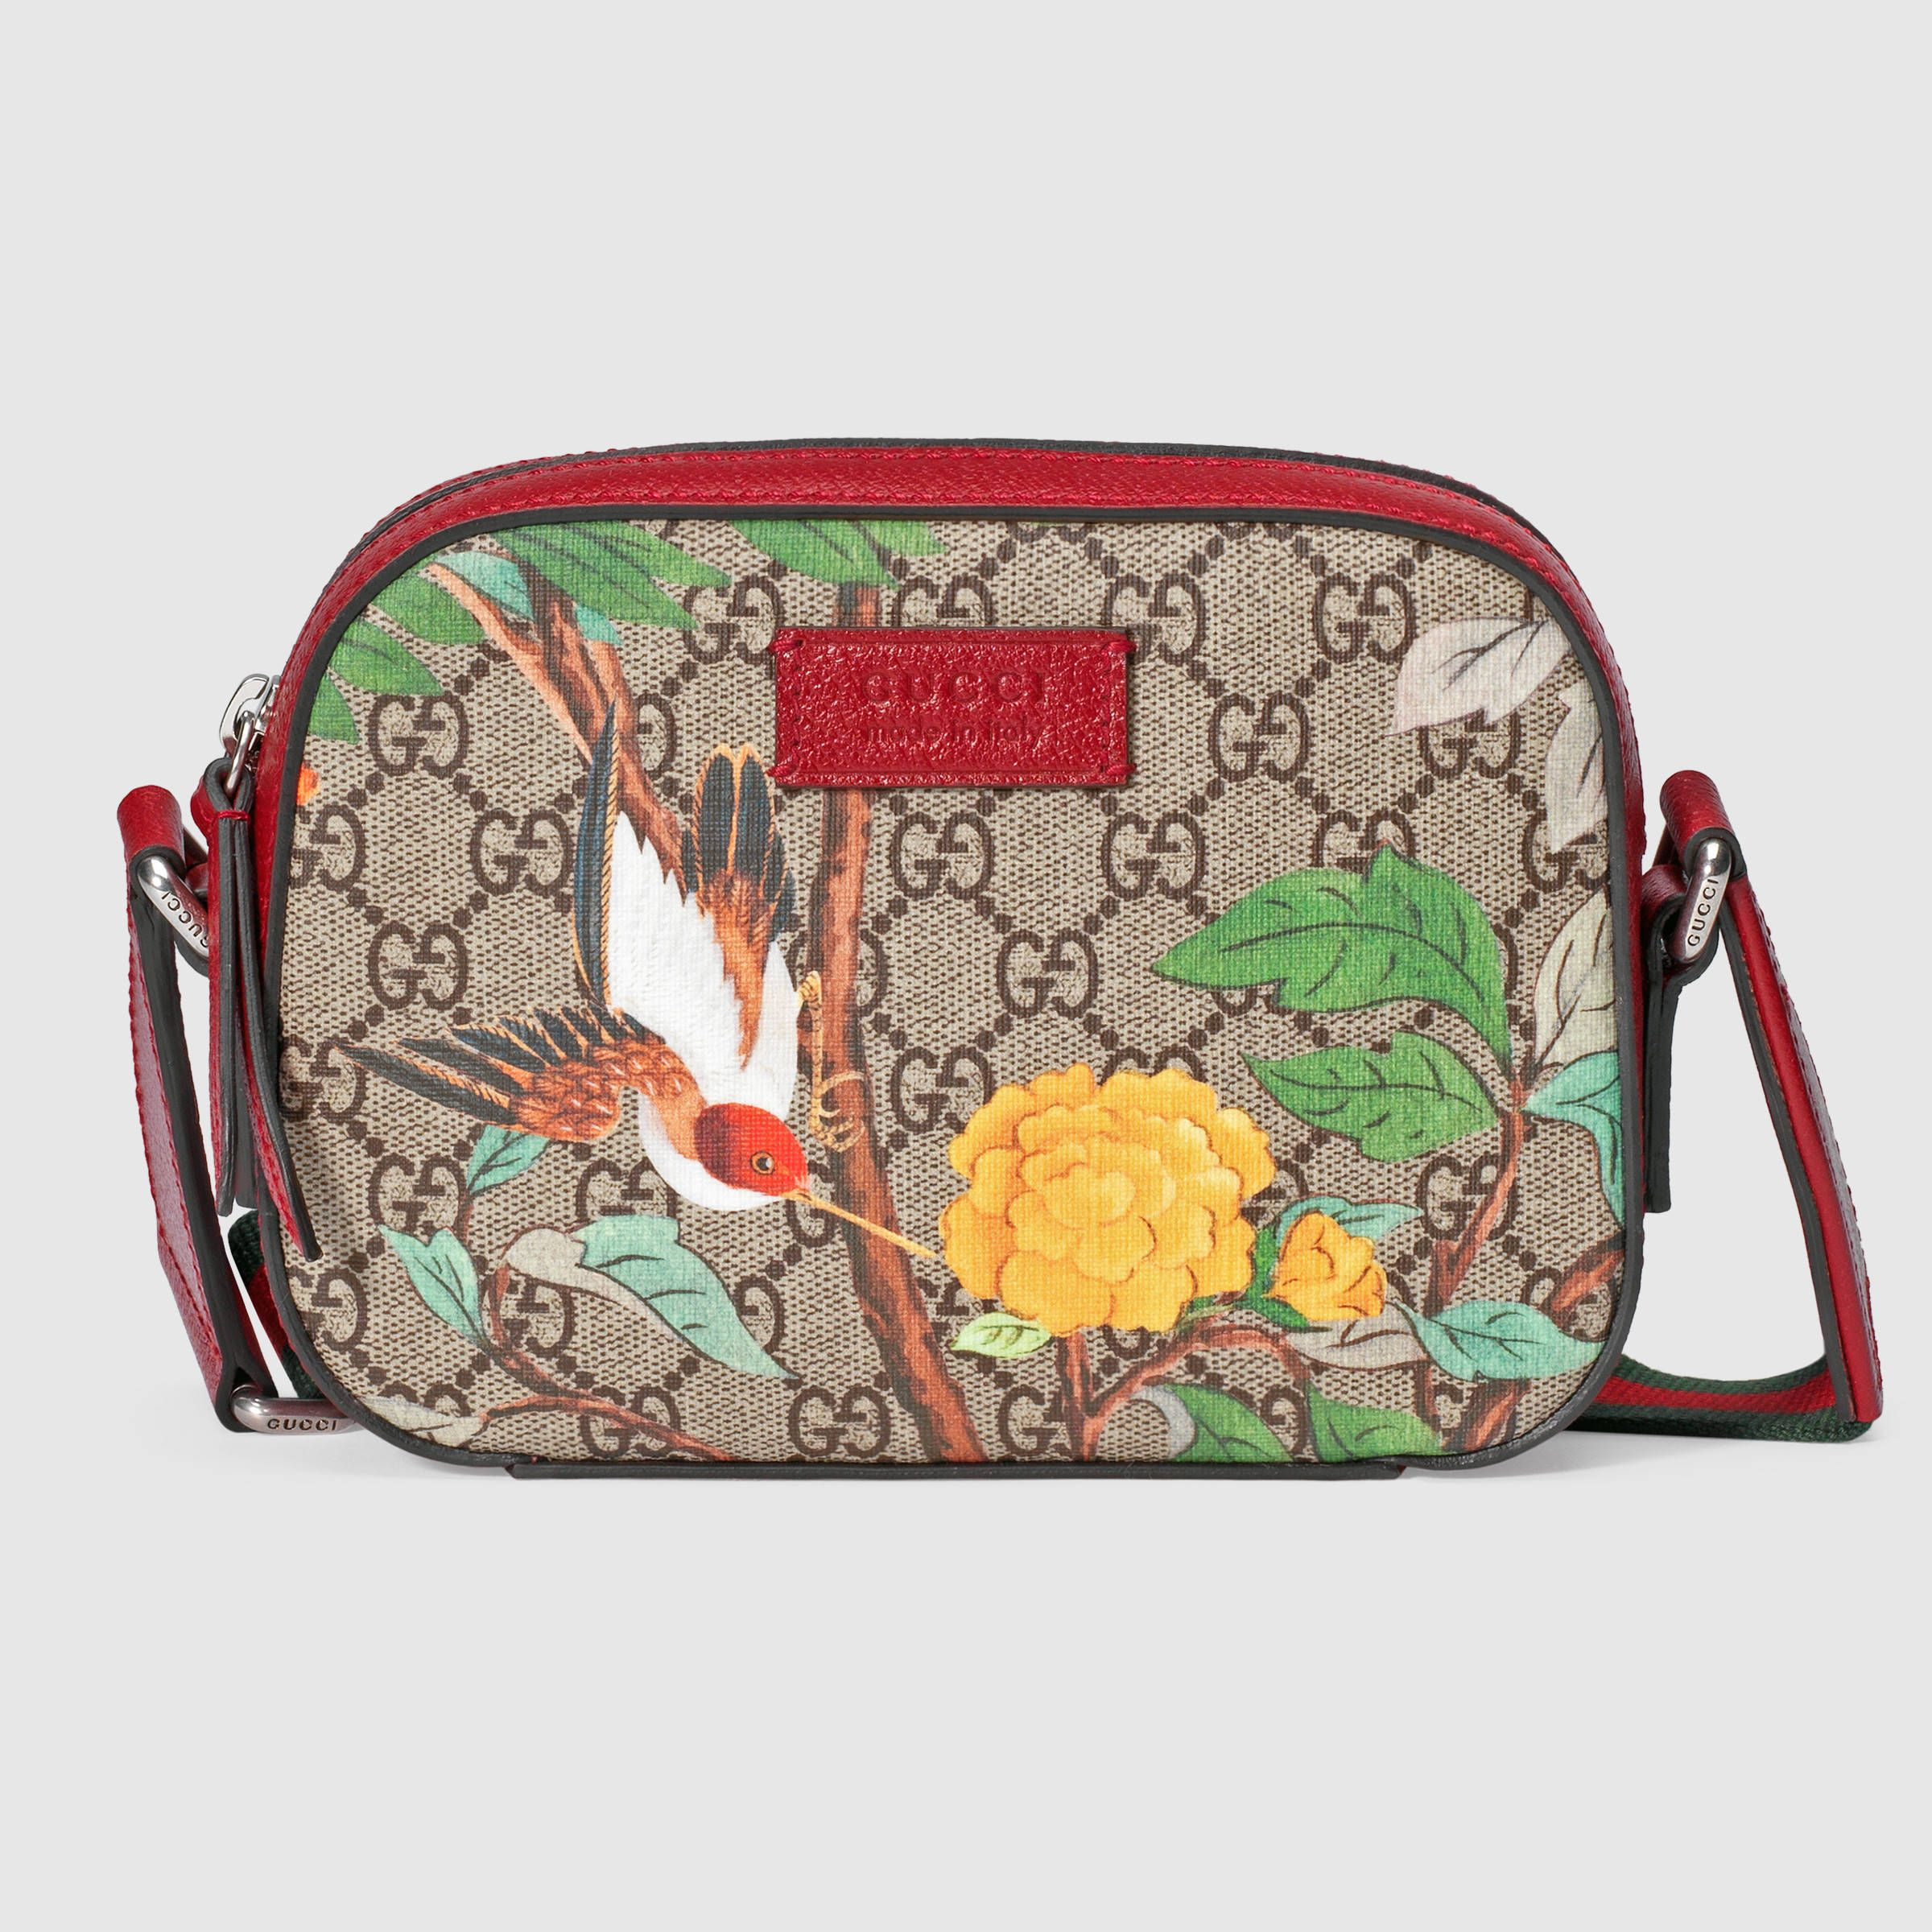 51947f2bf77 Gucci Tian GG Supreme shoulder bag